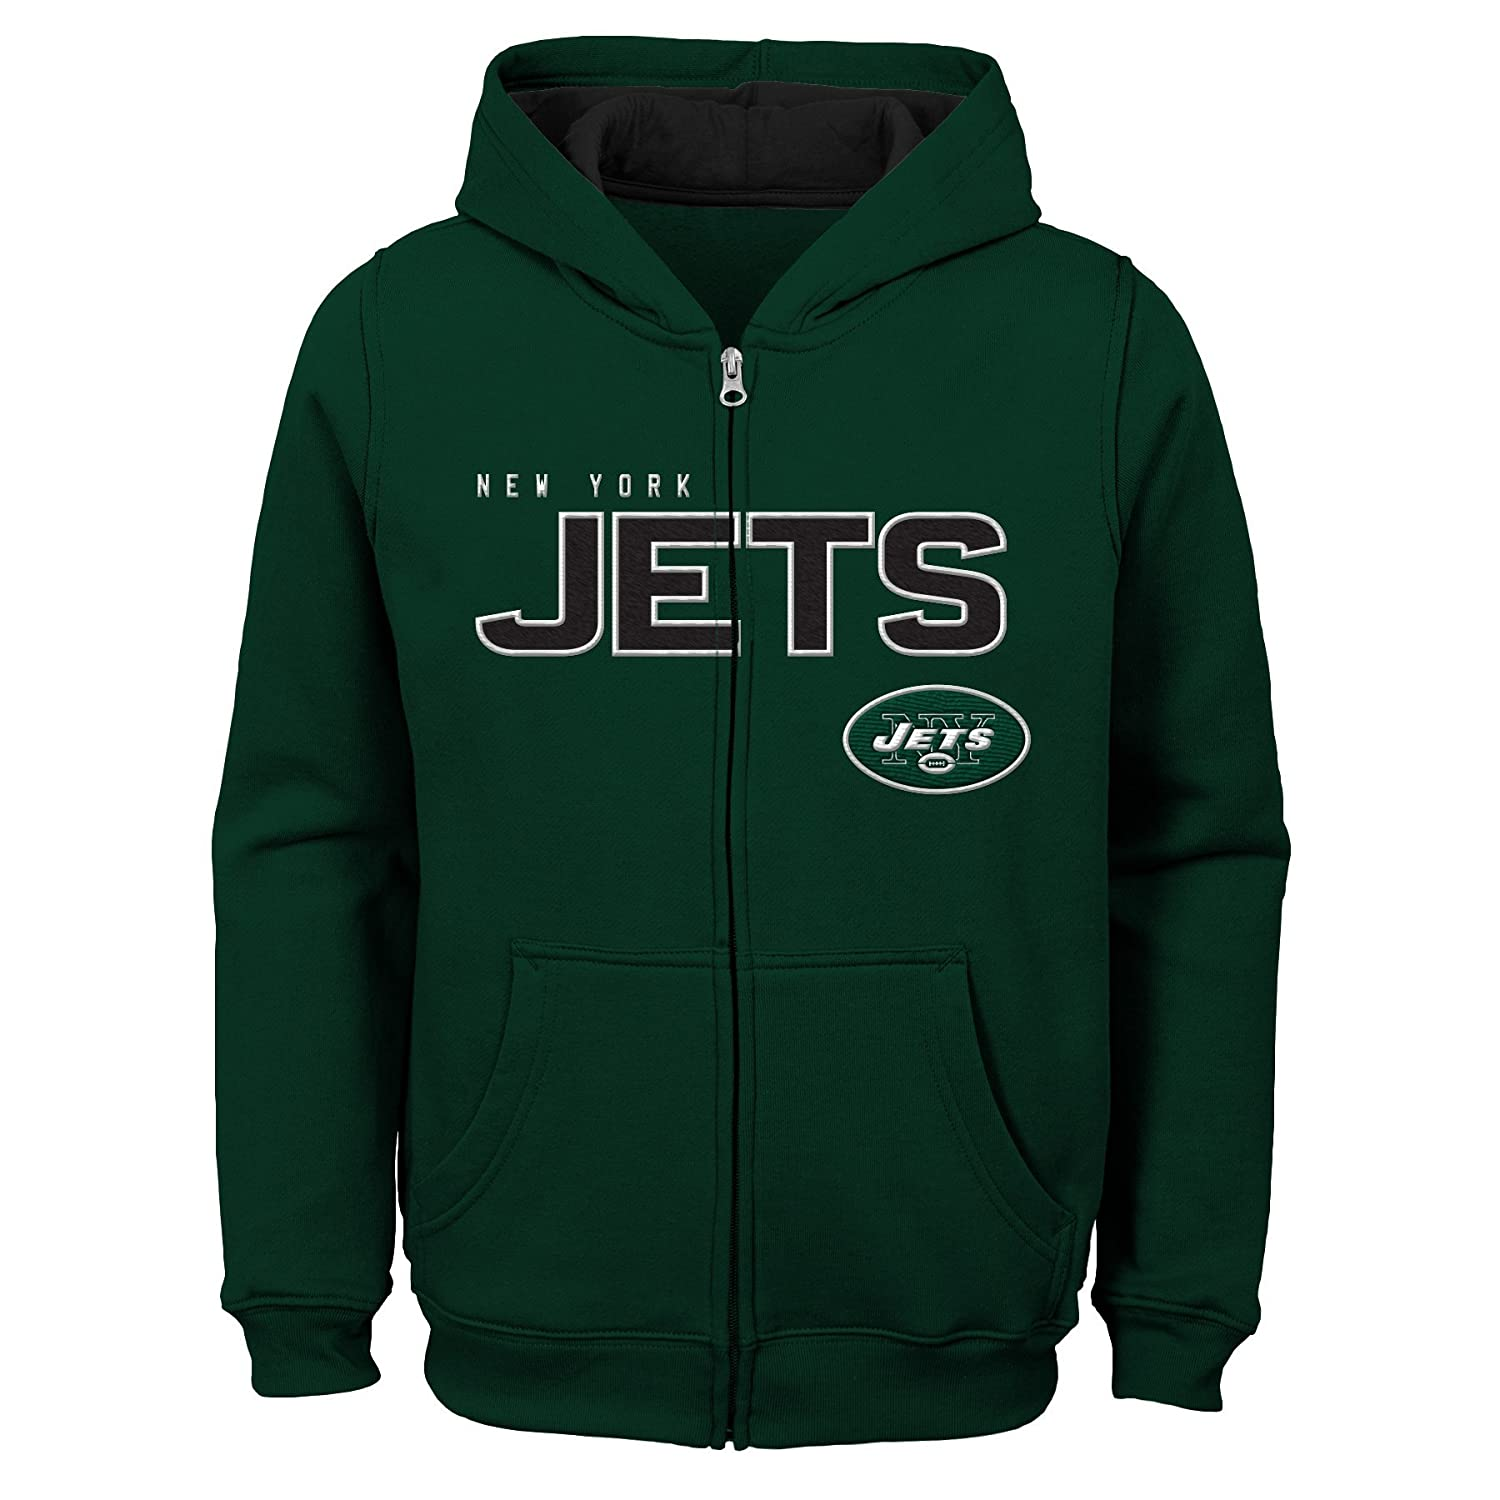 Outerstuff New York Jets Youth NFL Game Stated Full Zip Hooded Sweatshirt